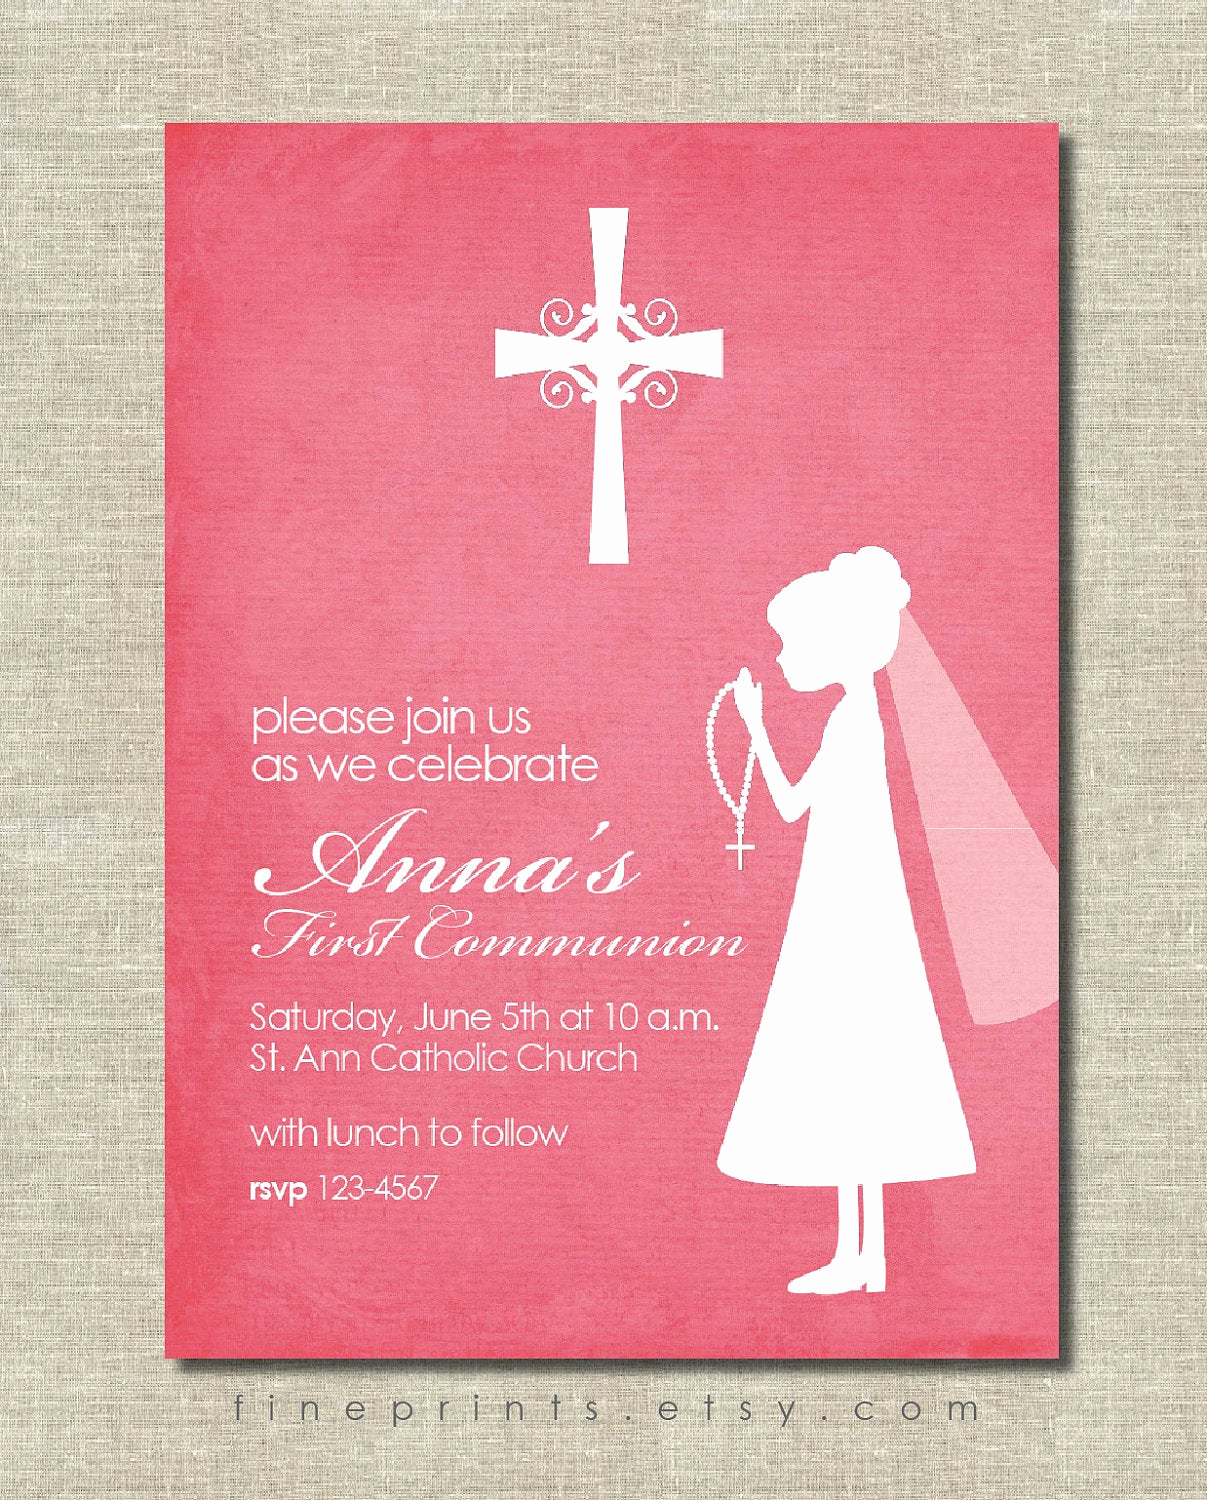 First Communion Invitation Ideas Inspirational First Munion Invitation Pink with Silhouette